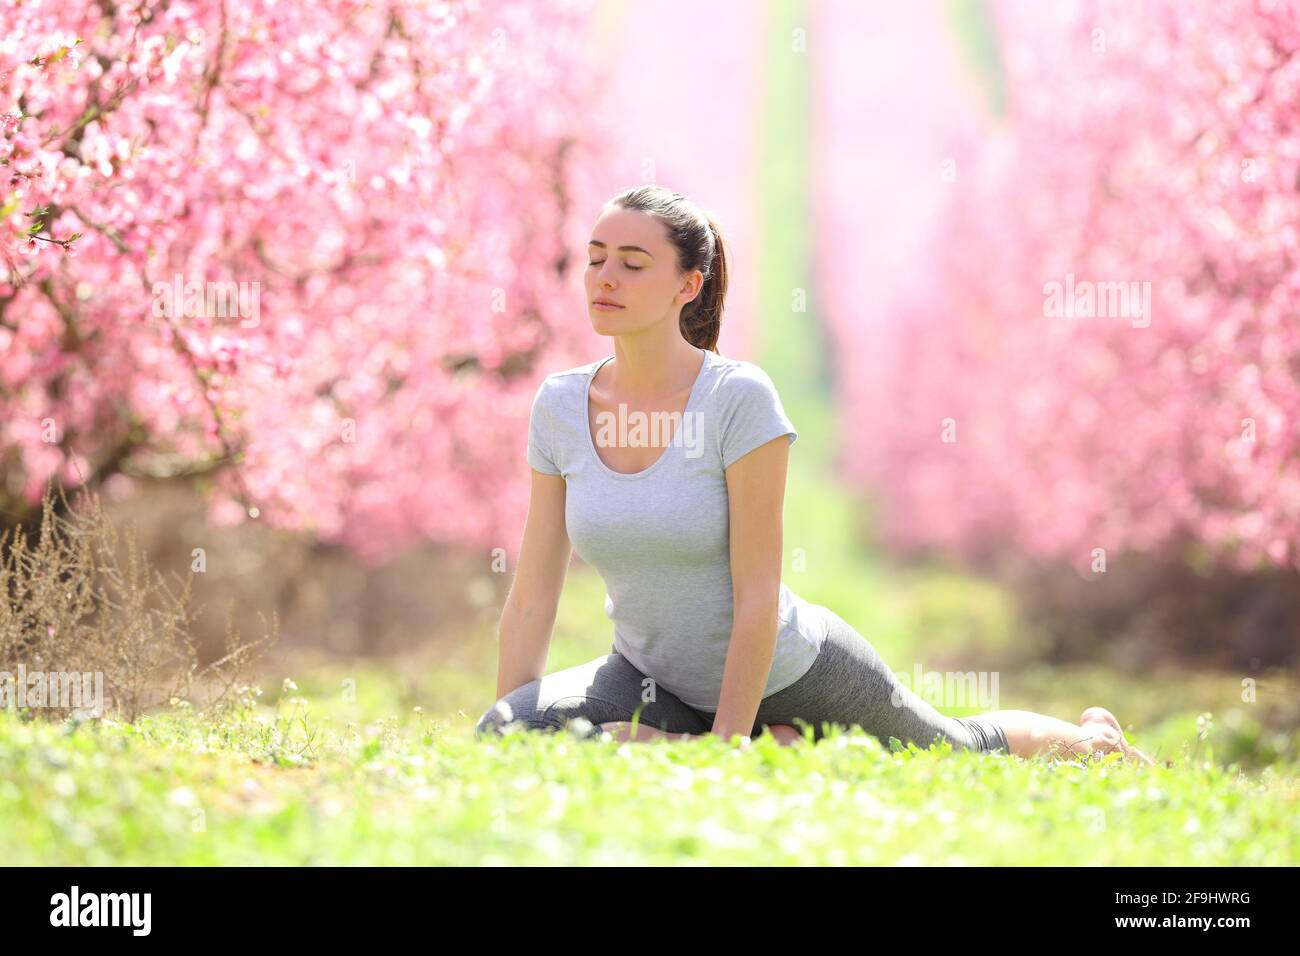 Concentrated woman practicing yoga exercise on the grass in a flowered field in springtime Stock Photo